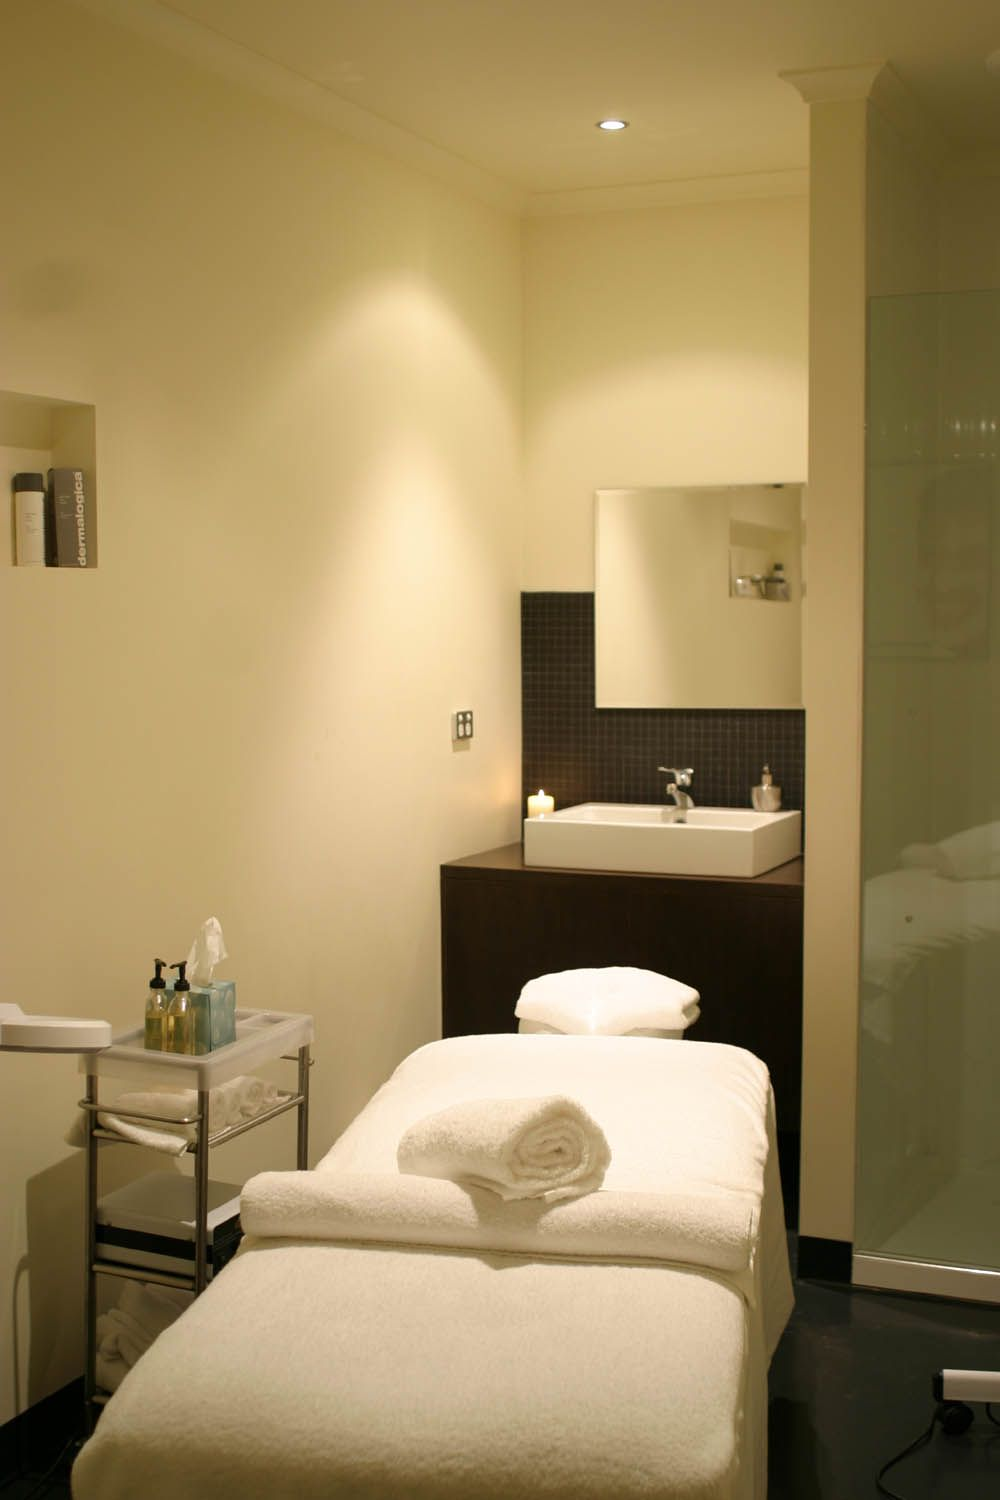 Massage Therapy Room Design Ideas: Face Works, Spa For Men, Richmond, Melbourne. Love The